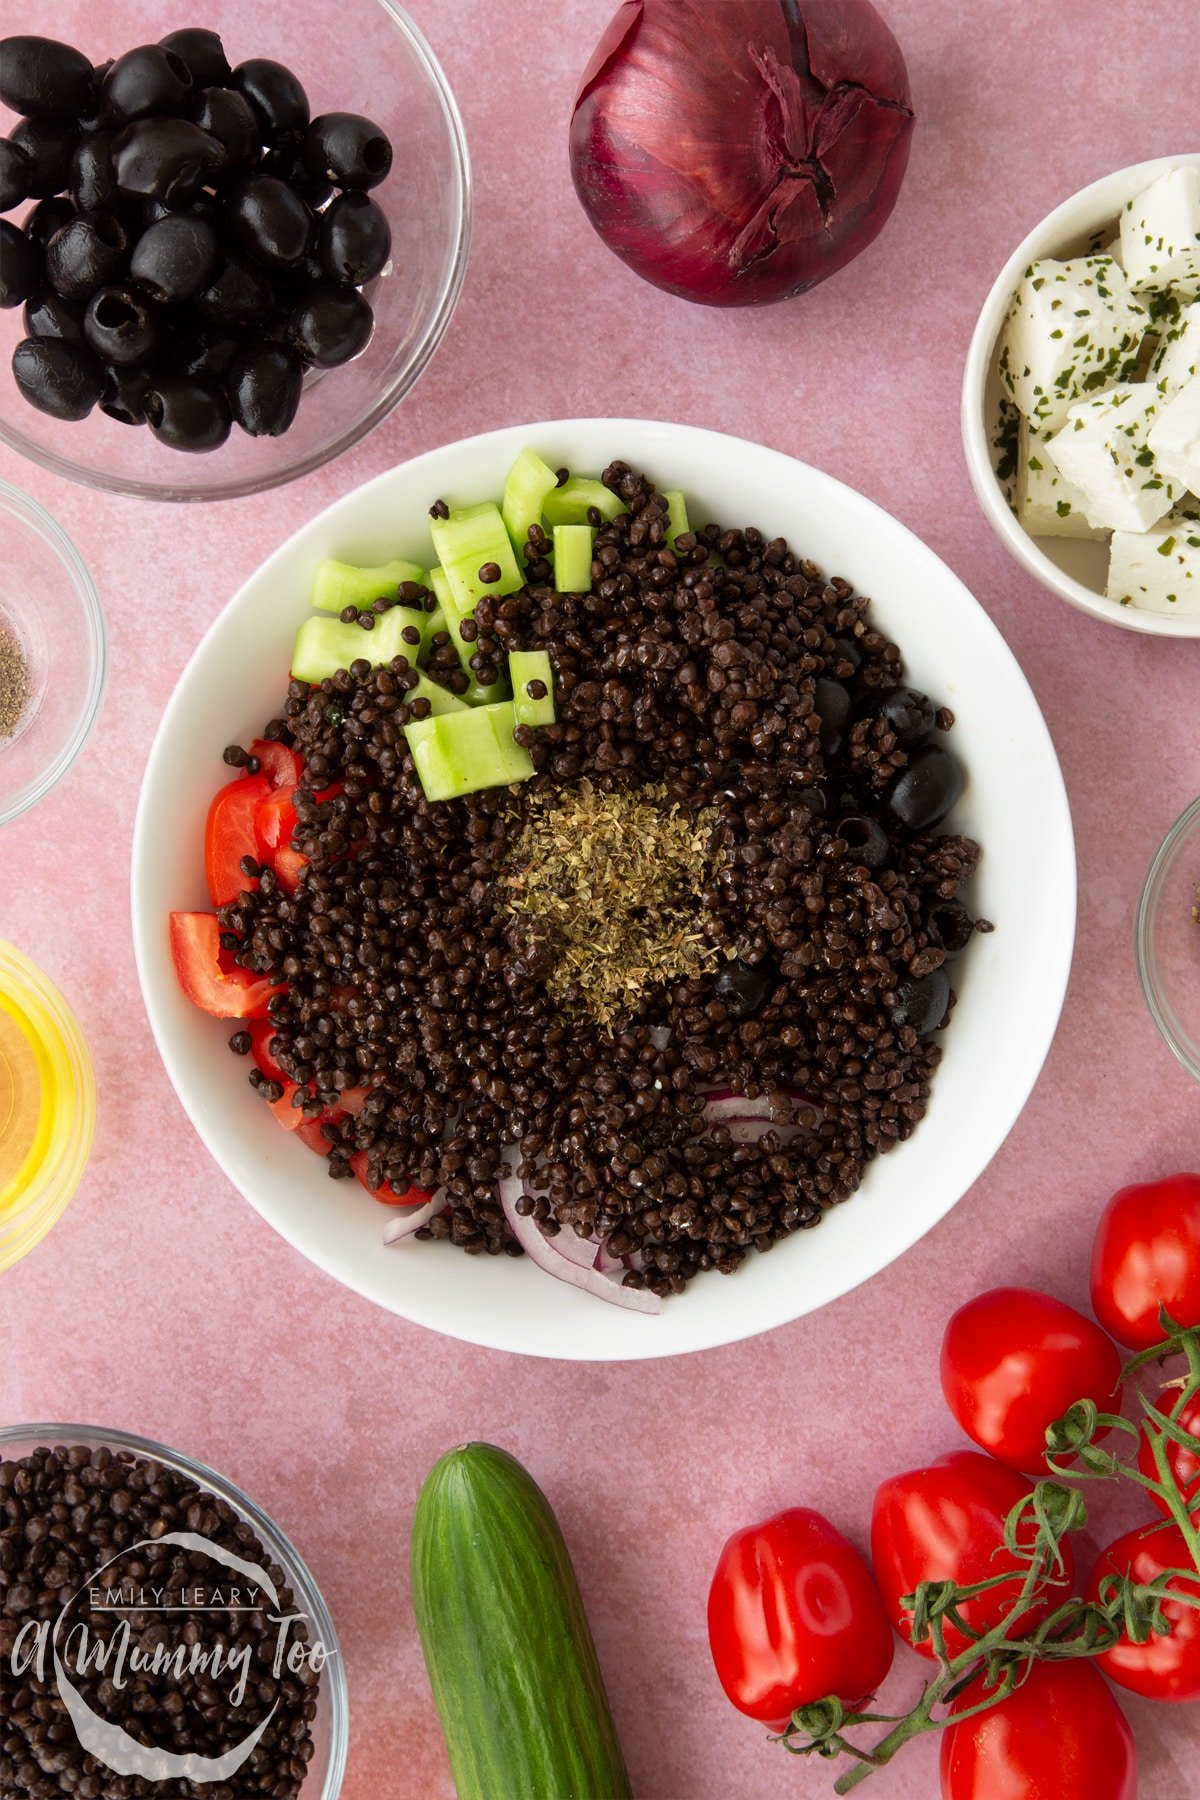 A white bowl containing chopped tomatoes, chopped cucumber, sliced red onion, whole black olives, cooked lentils, olive oil and oregano. Ingredients to make Greek lentil salad surround the bowl.